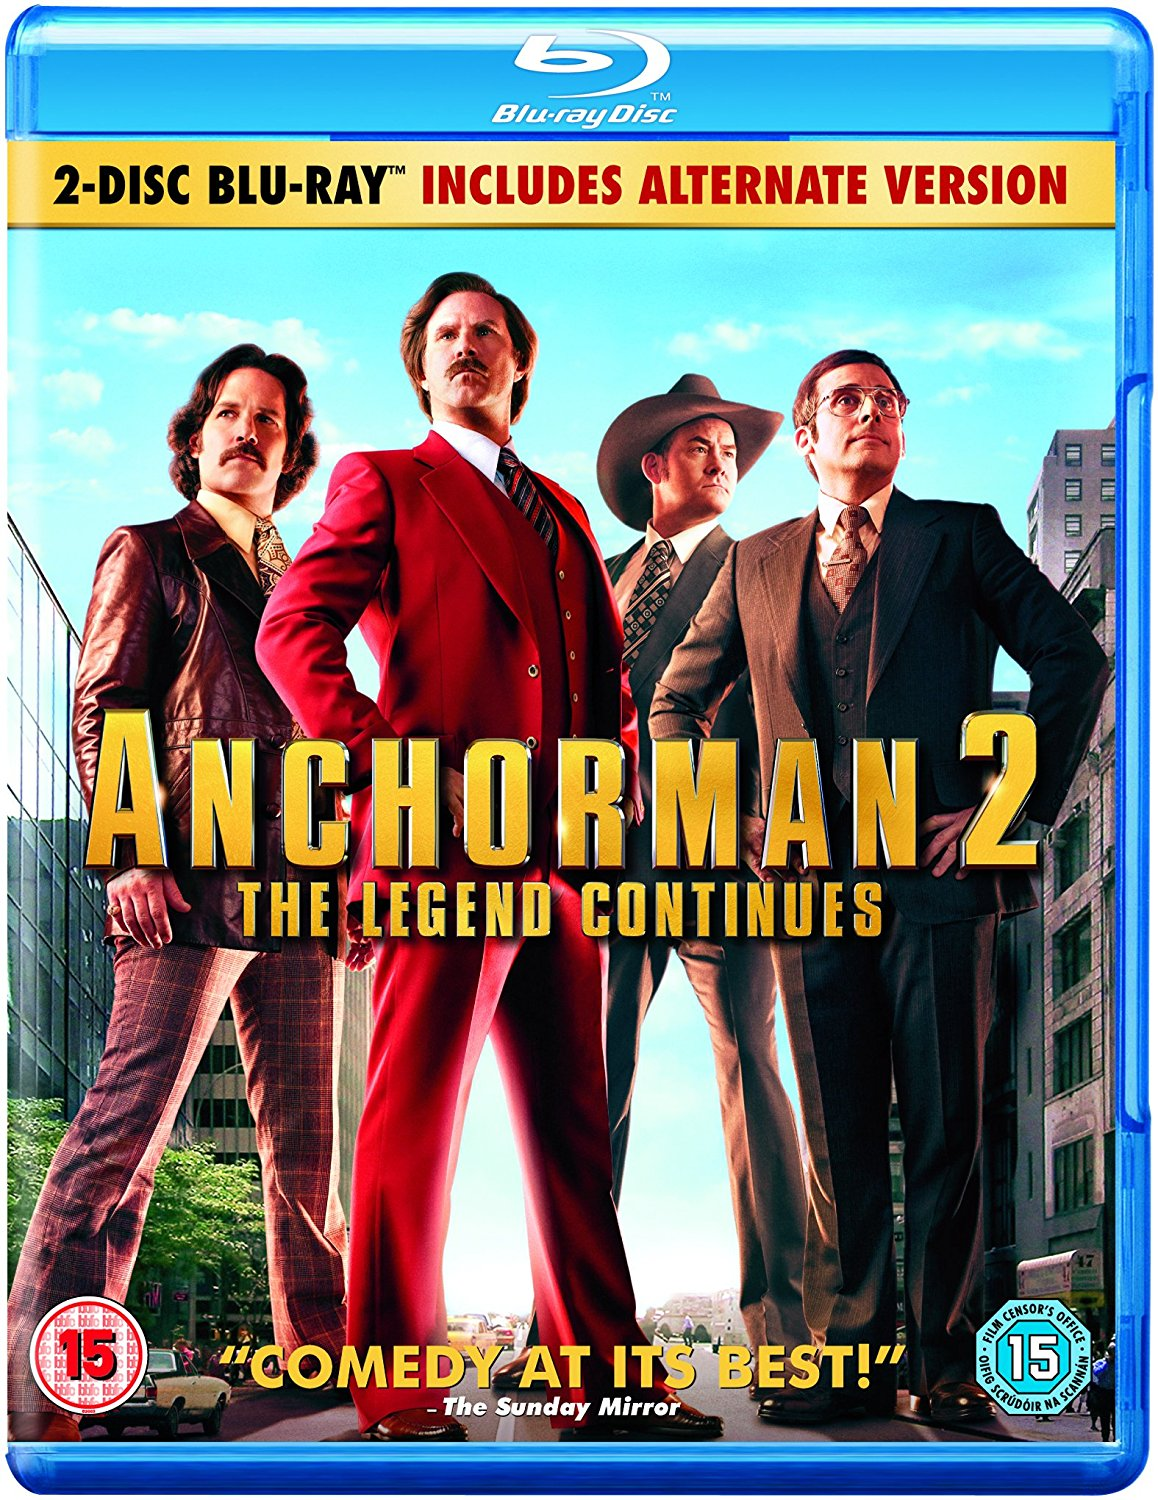 Anchorman 2: The Legend Continues - Theatrical & Alternate Versions (Blu-ray)